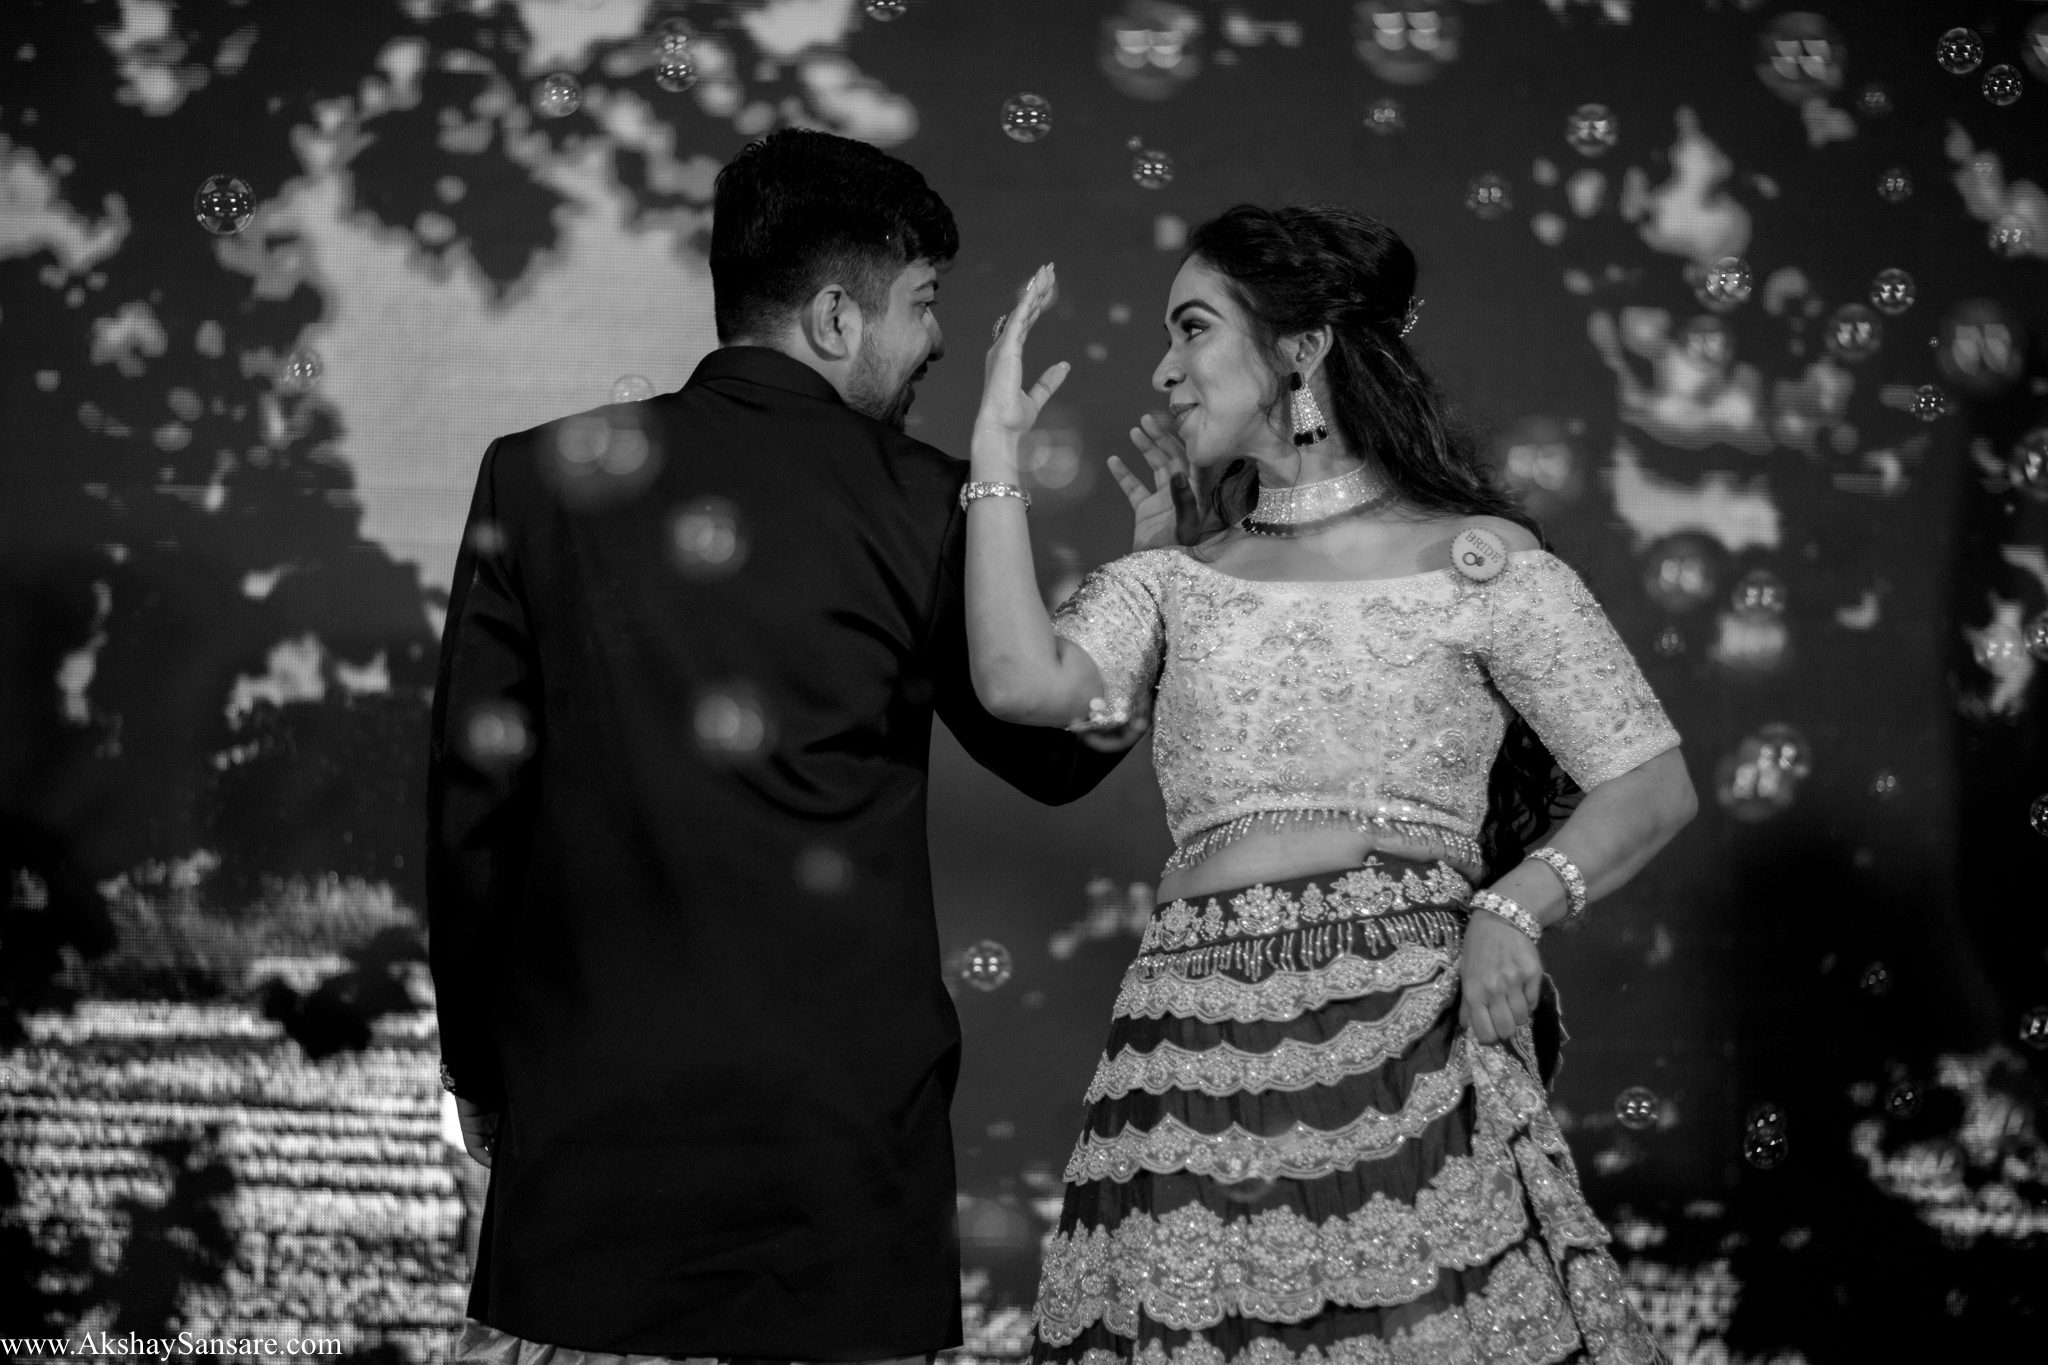 Nupur & Rohan wedding Akshay Sansare Photography best wedding photographer in mumbai India Candid(11).jpg